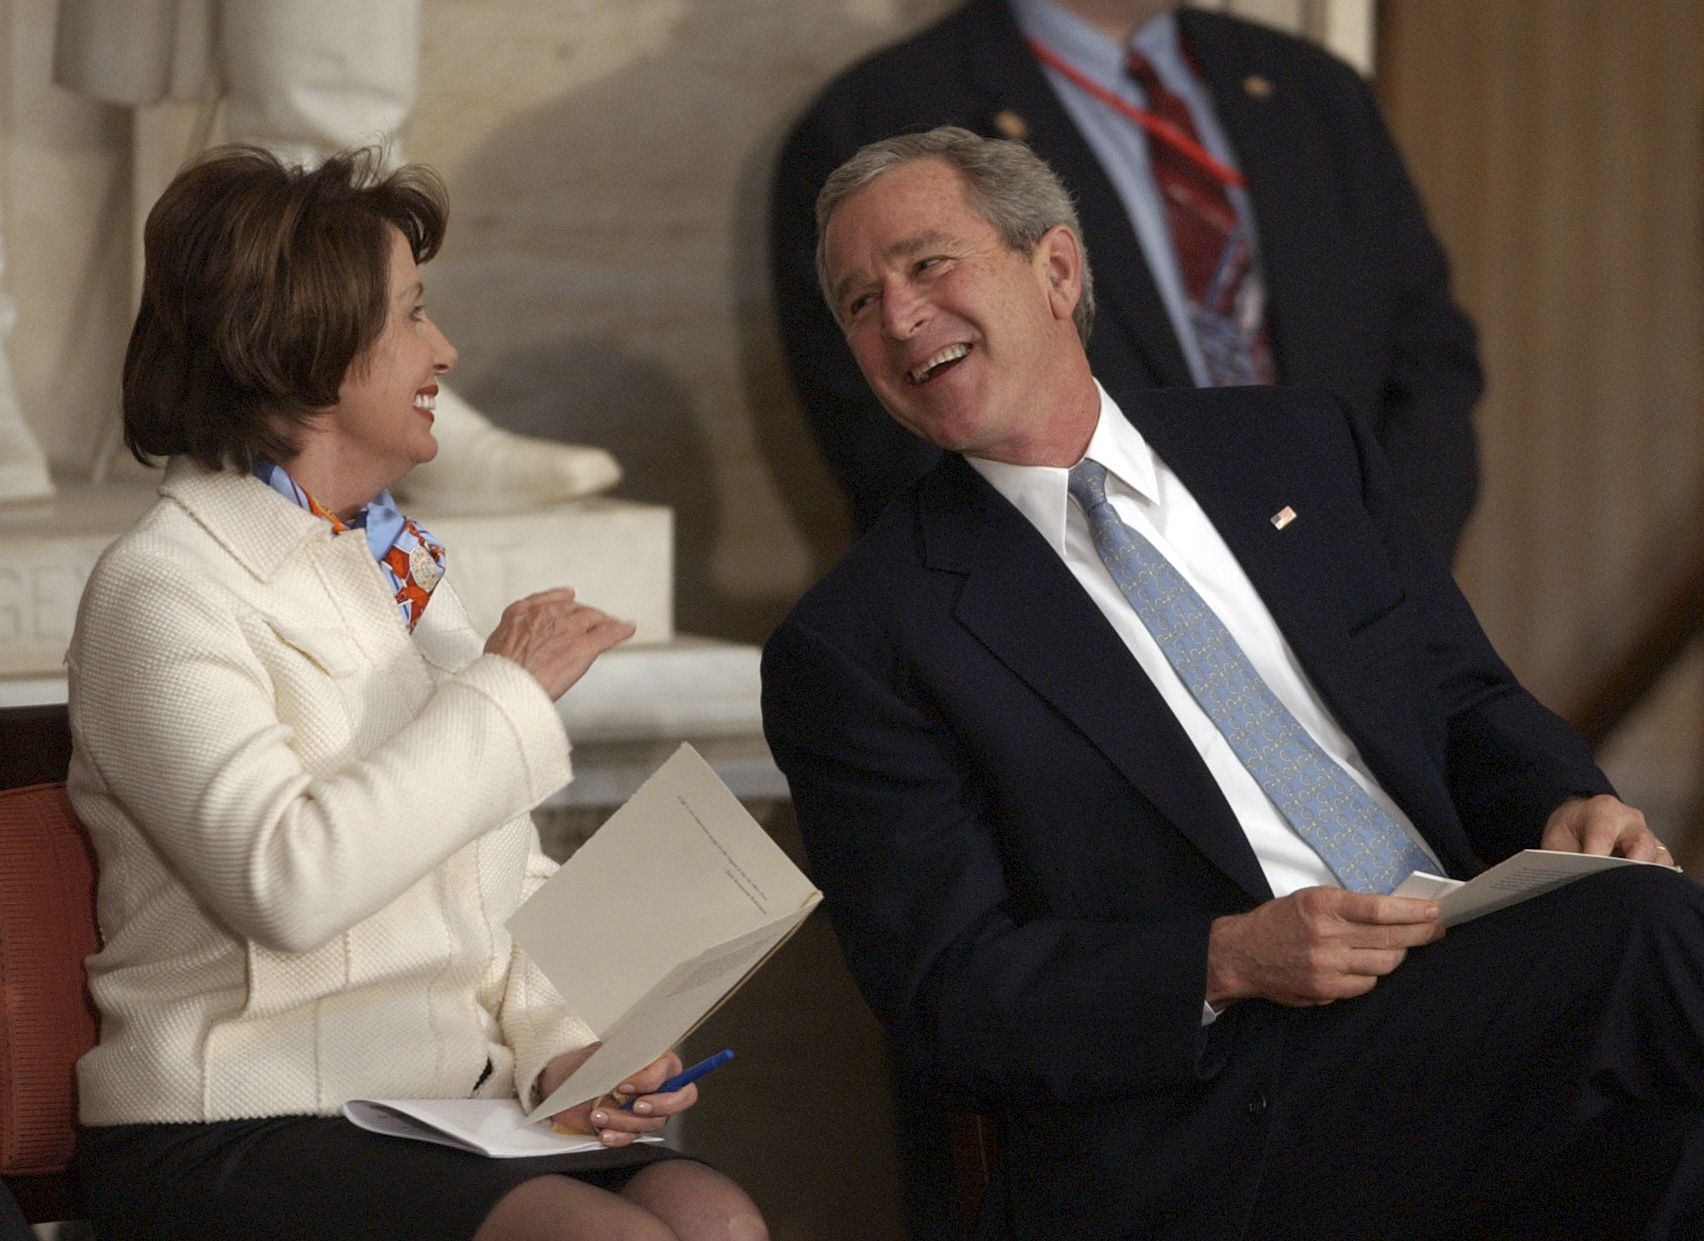 George W. Bush and Pelosi share a laugh while attending the Congressional Gold Medal ceremony.